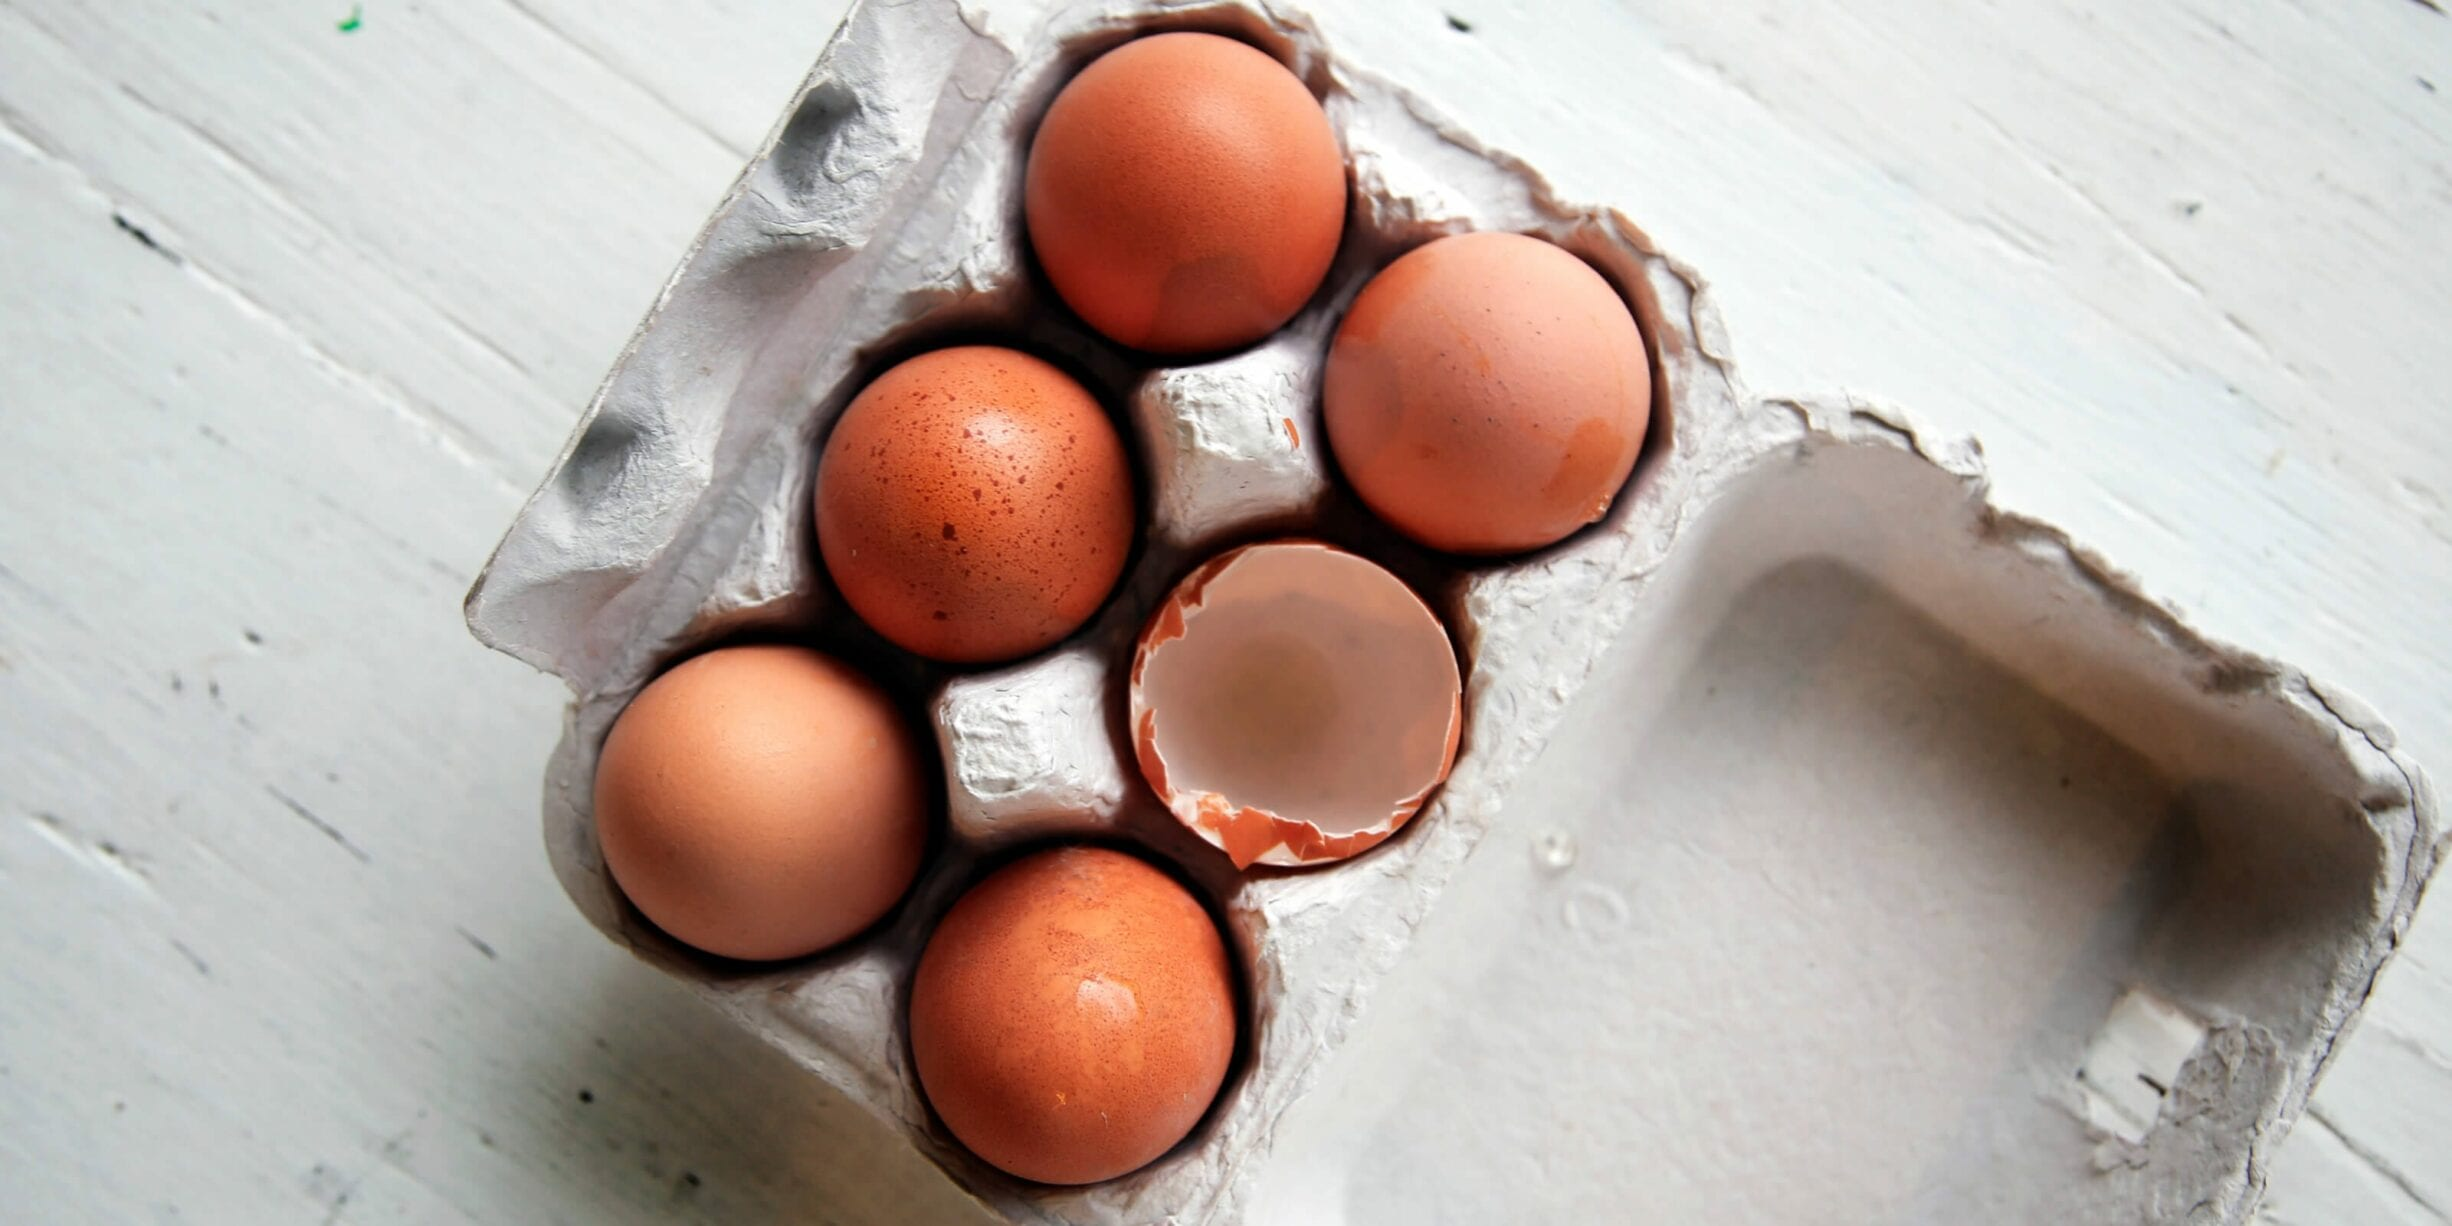 carton of six brown eggs, one cracked